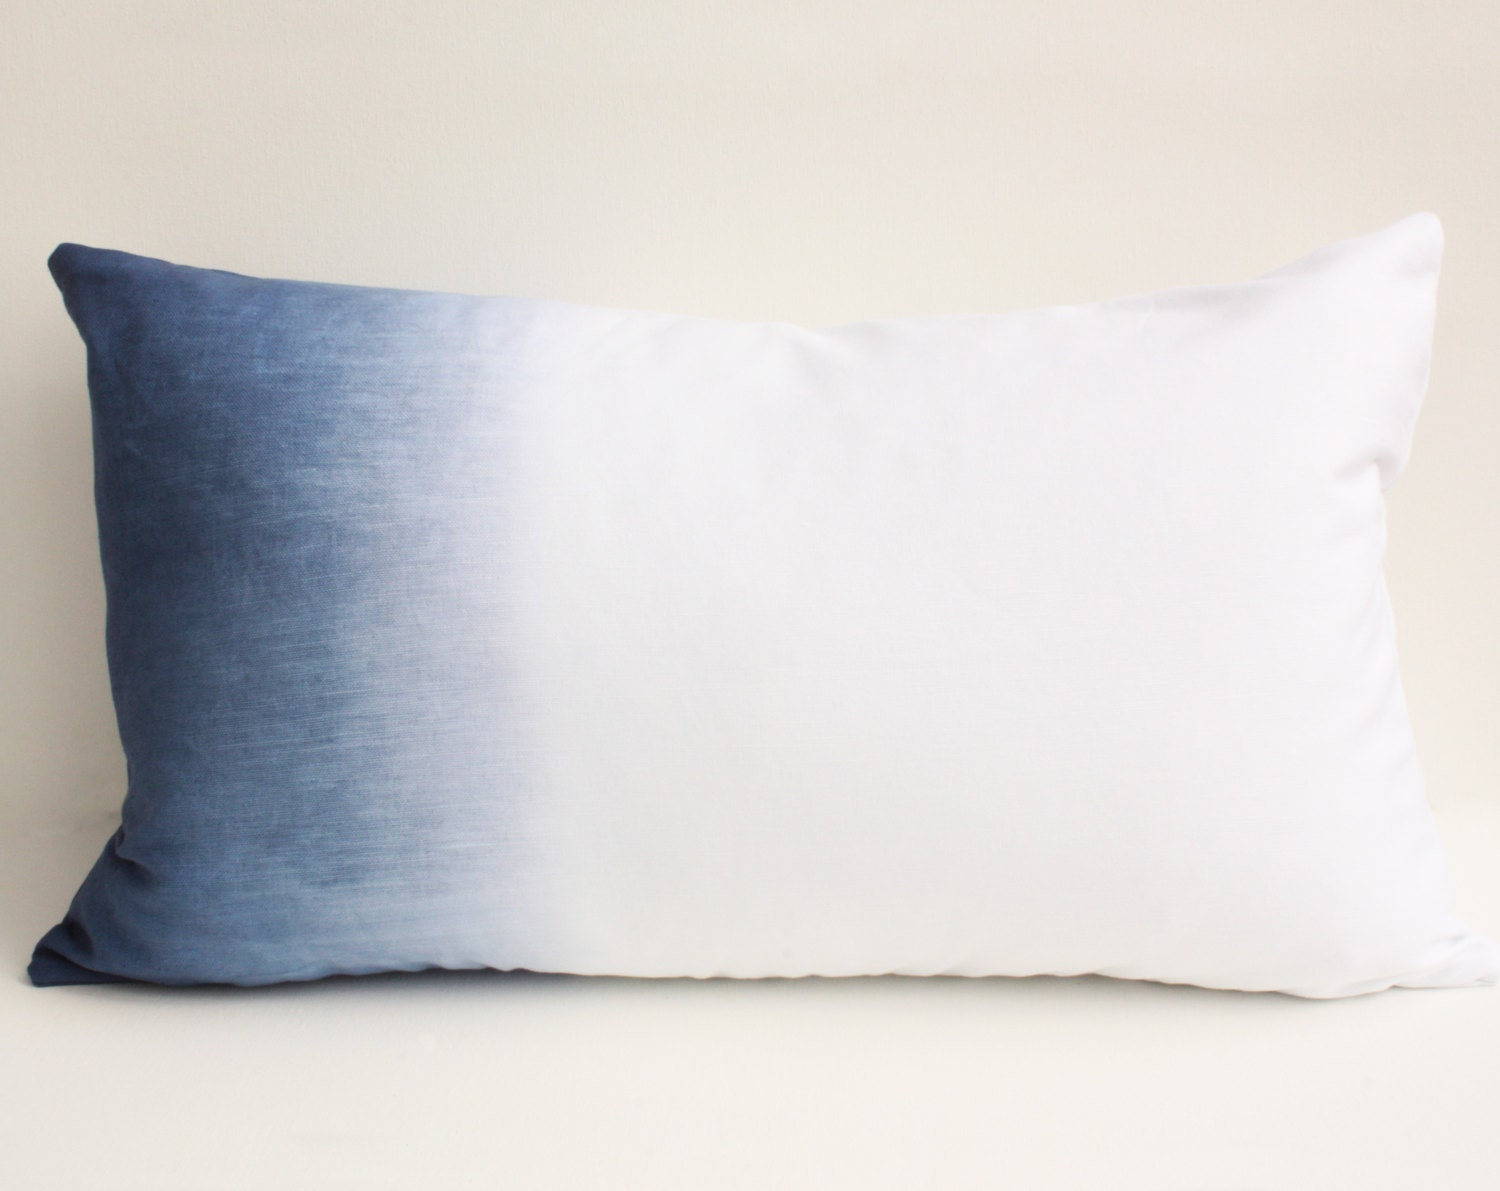 Navy Blue Pillow Cover, Ombre Pillow Cover, Navy Pillow Cover, Gradient Dye Pillow Cover, Ombre Dyed Pillow, Dip Dye Pillow - JustDwell